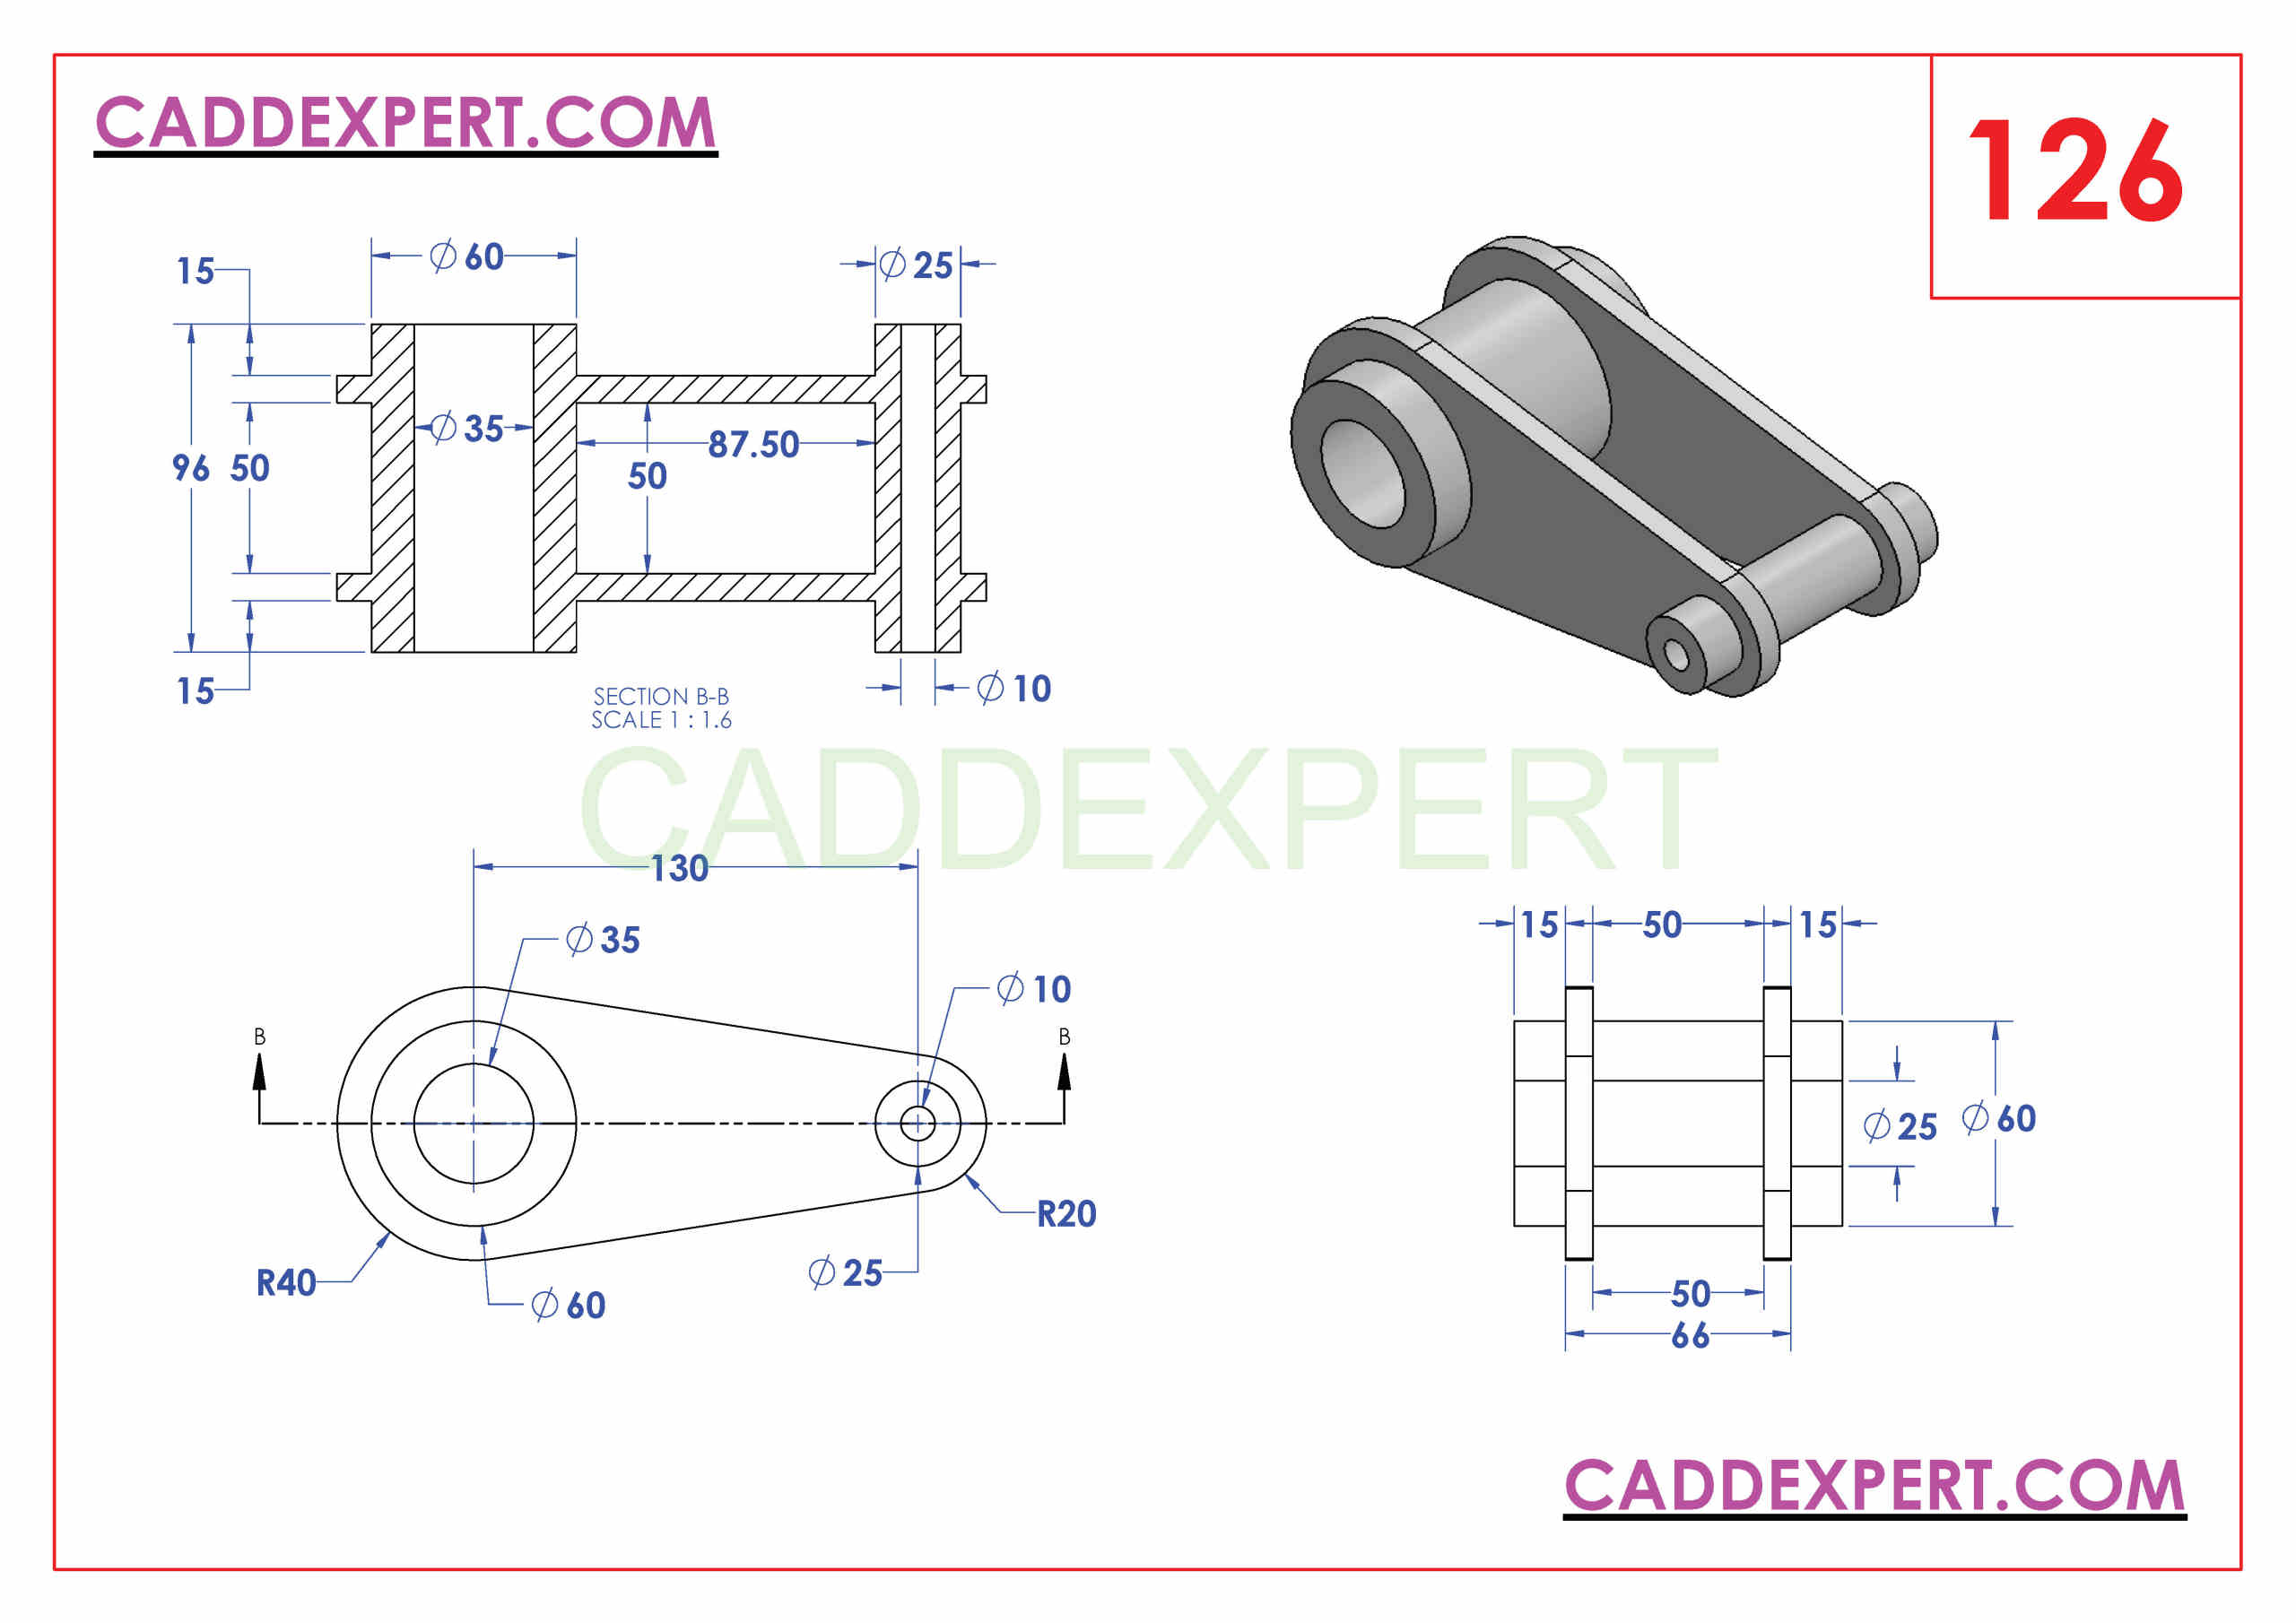 50 SOLIDWORKS EXERCISES PDF - 126